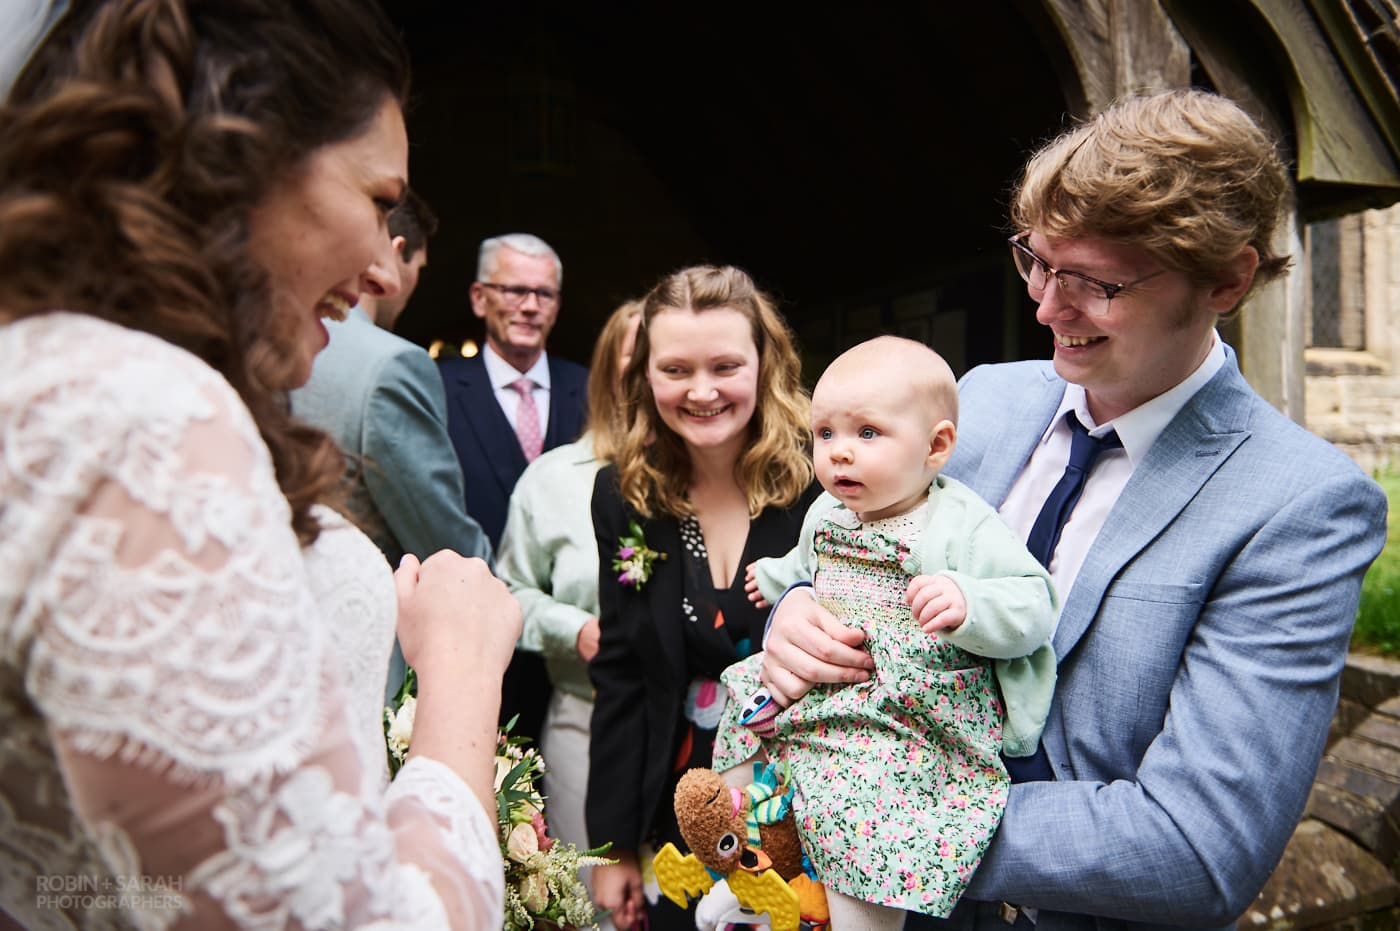 Bride greets wedding guests after church ceremony